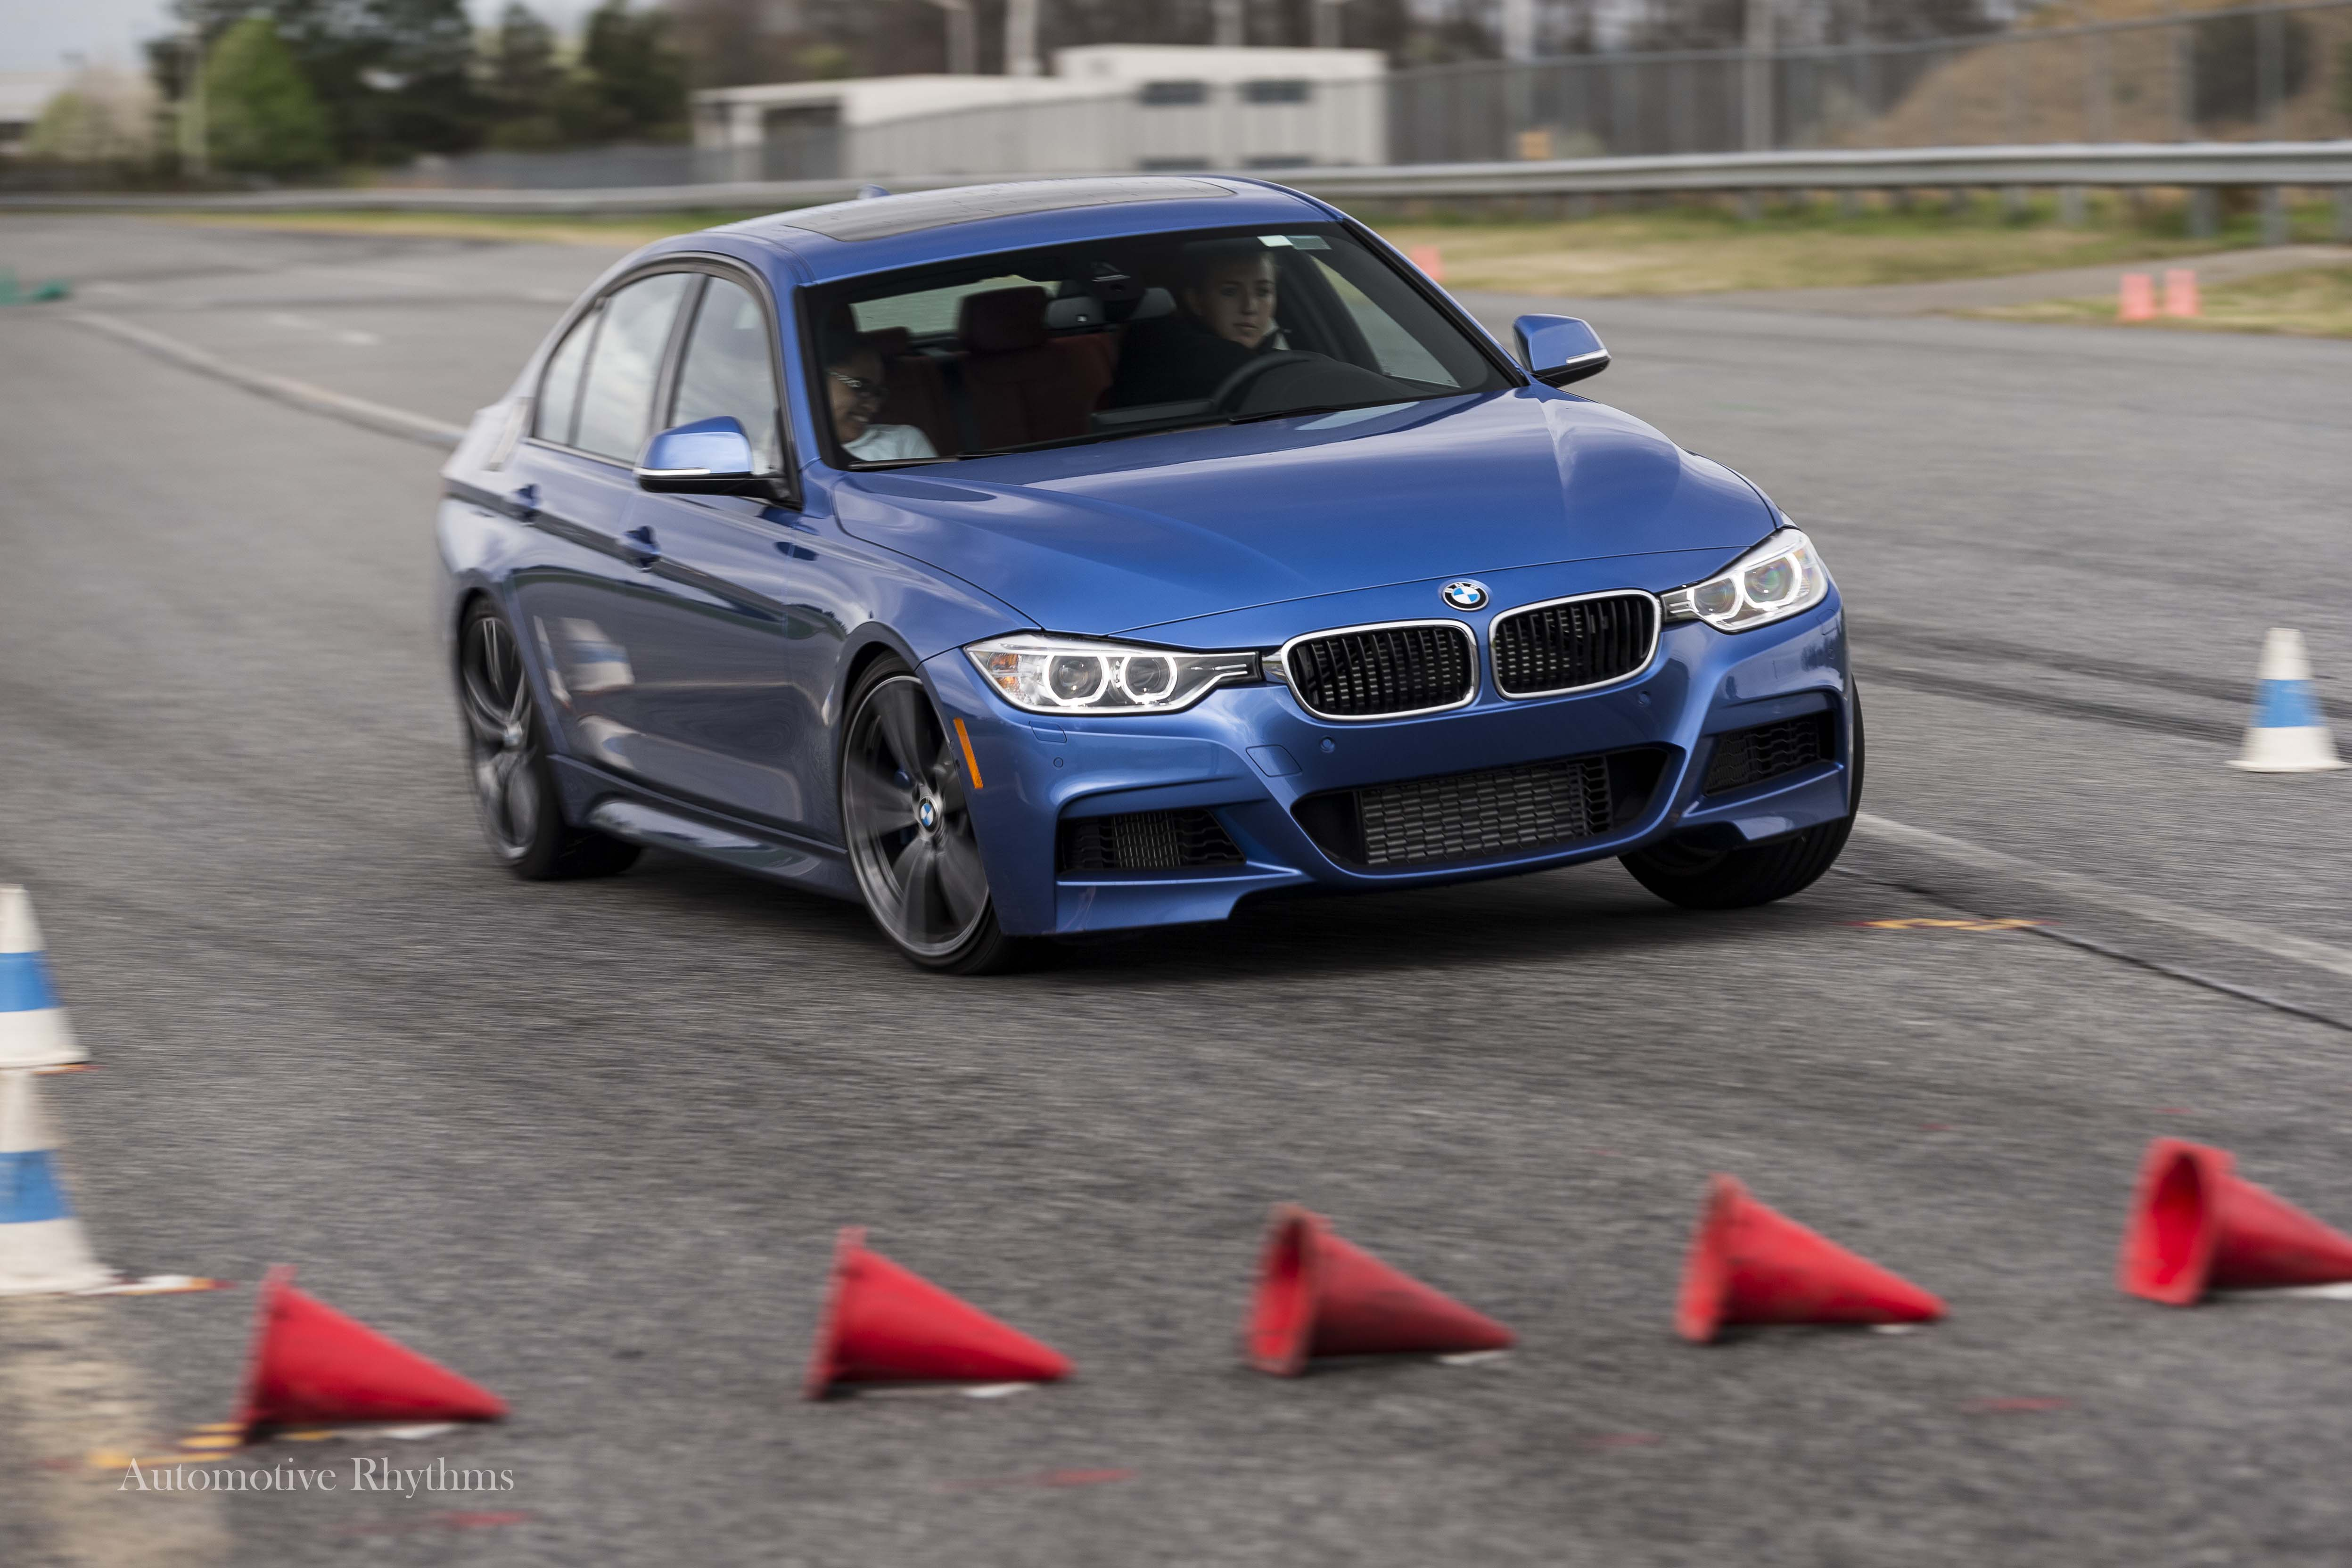 bmw's ultimate driving experience, offering dynamic behind-the